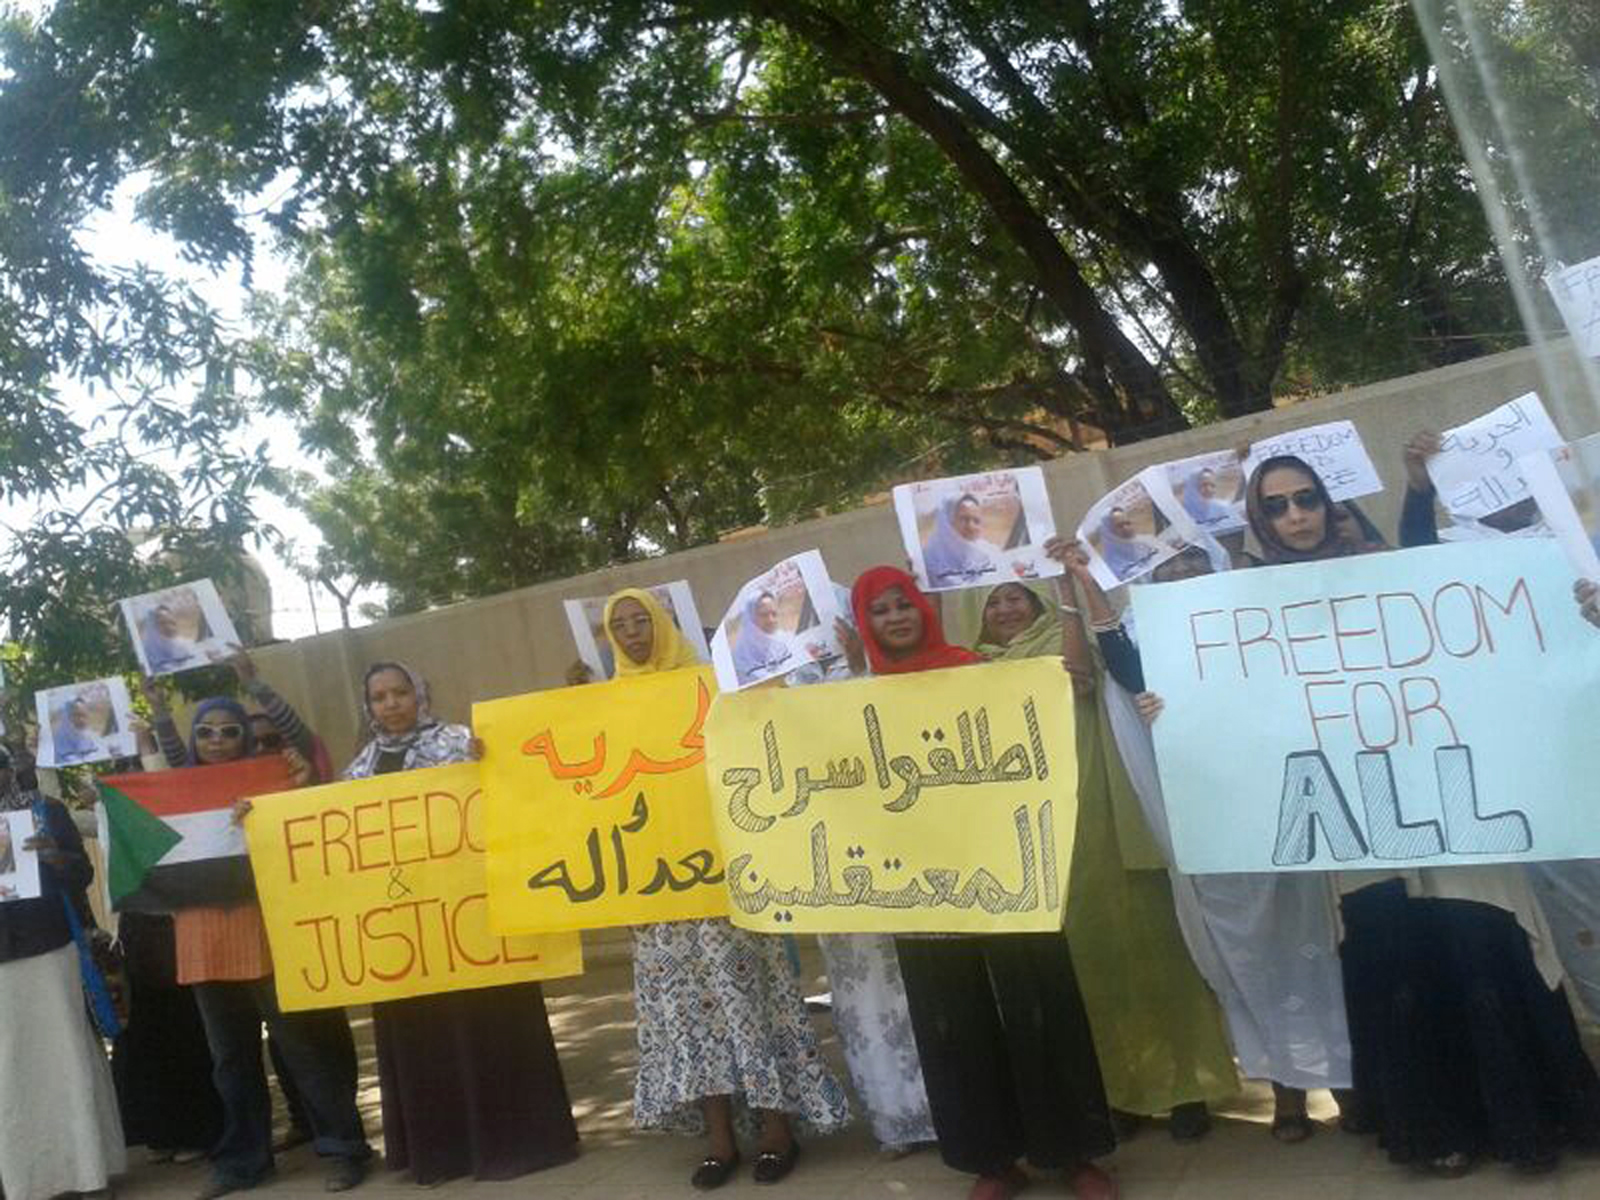 Freedom for Sudanese protesters